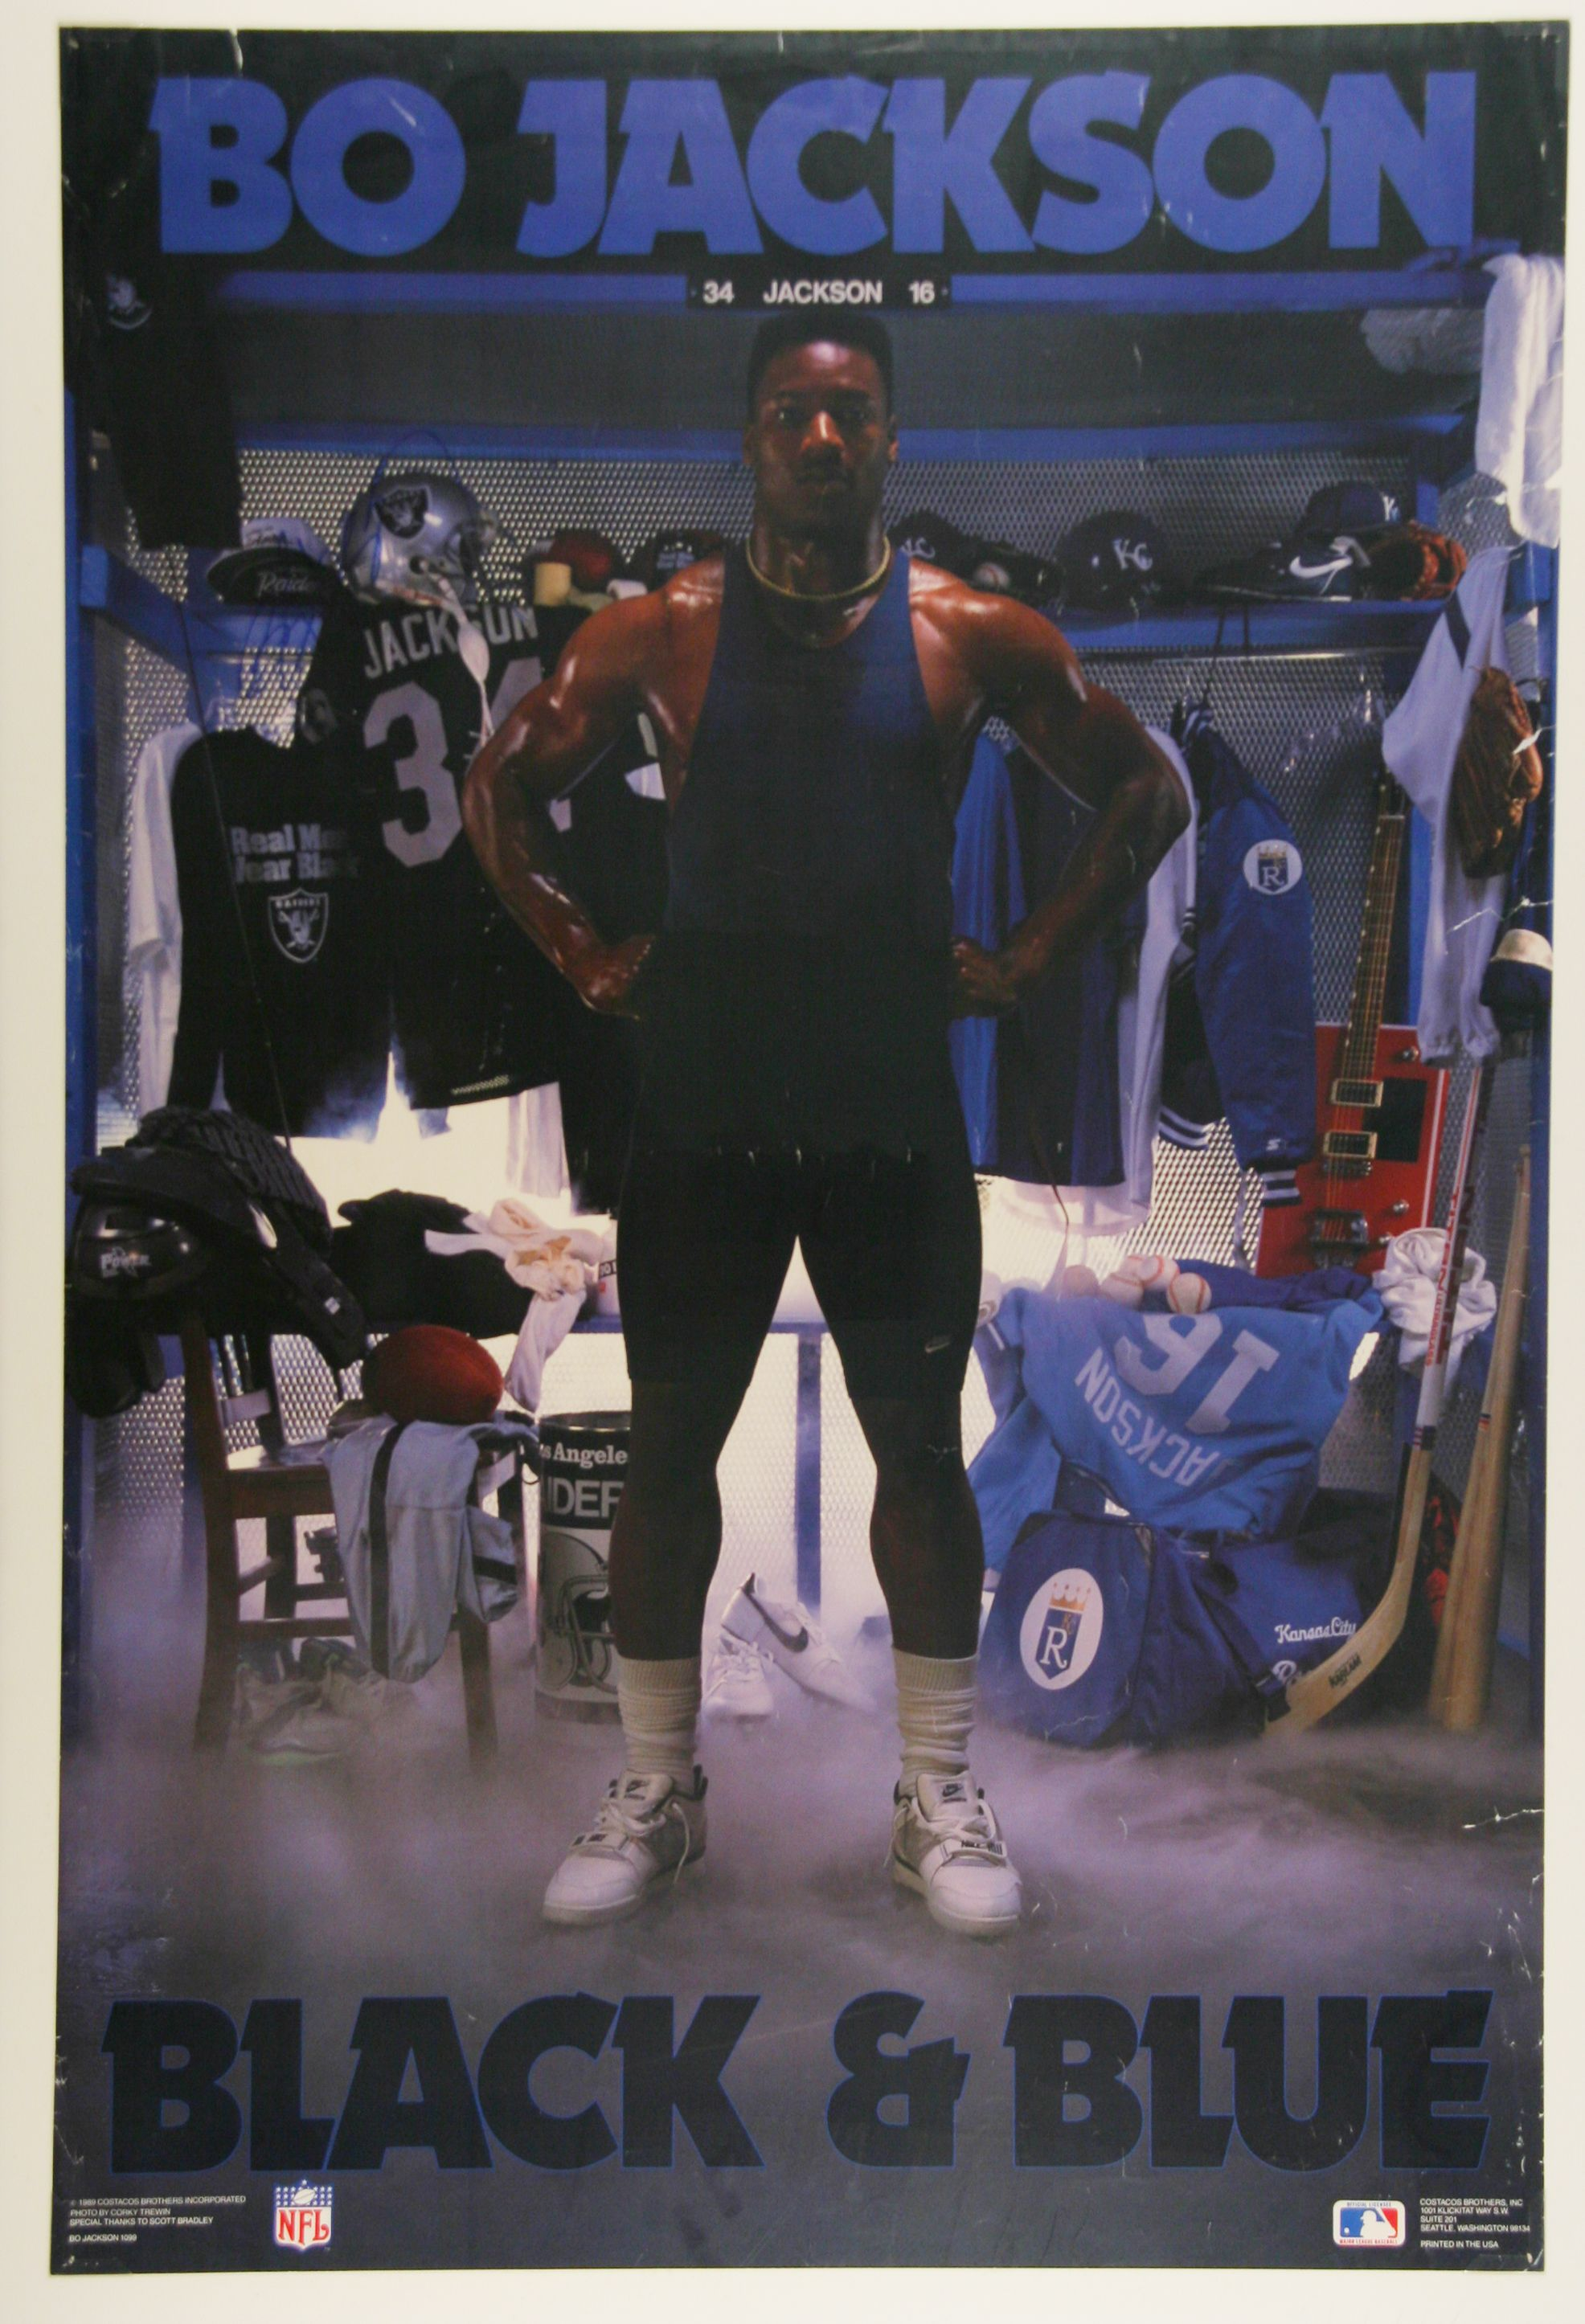 Costacos Brothers: The Greatest Sports Posters Ever Made